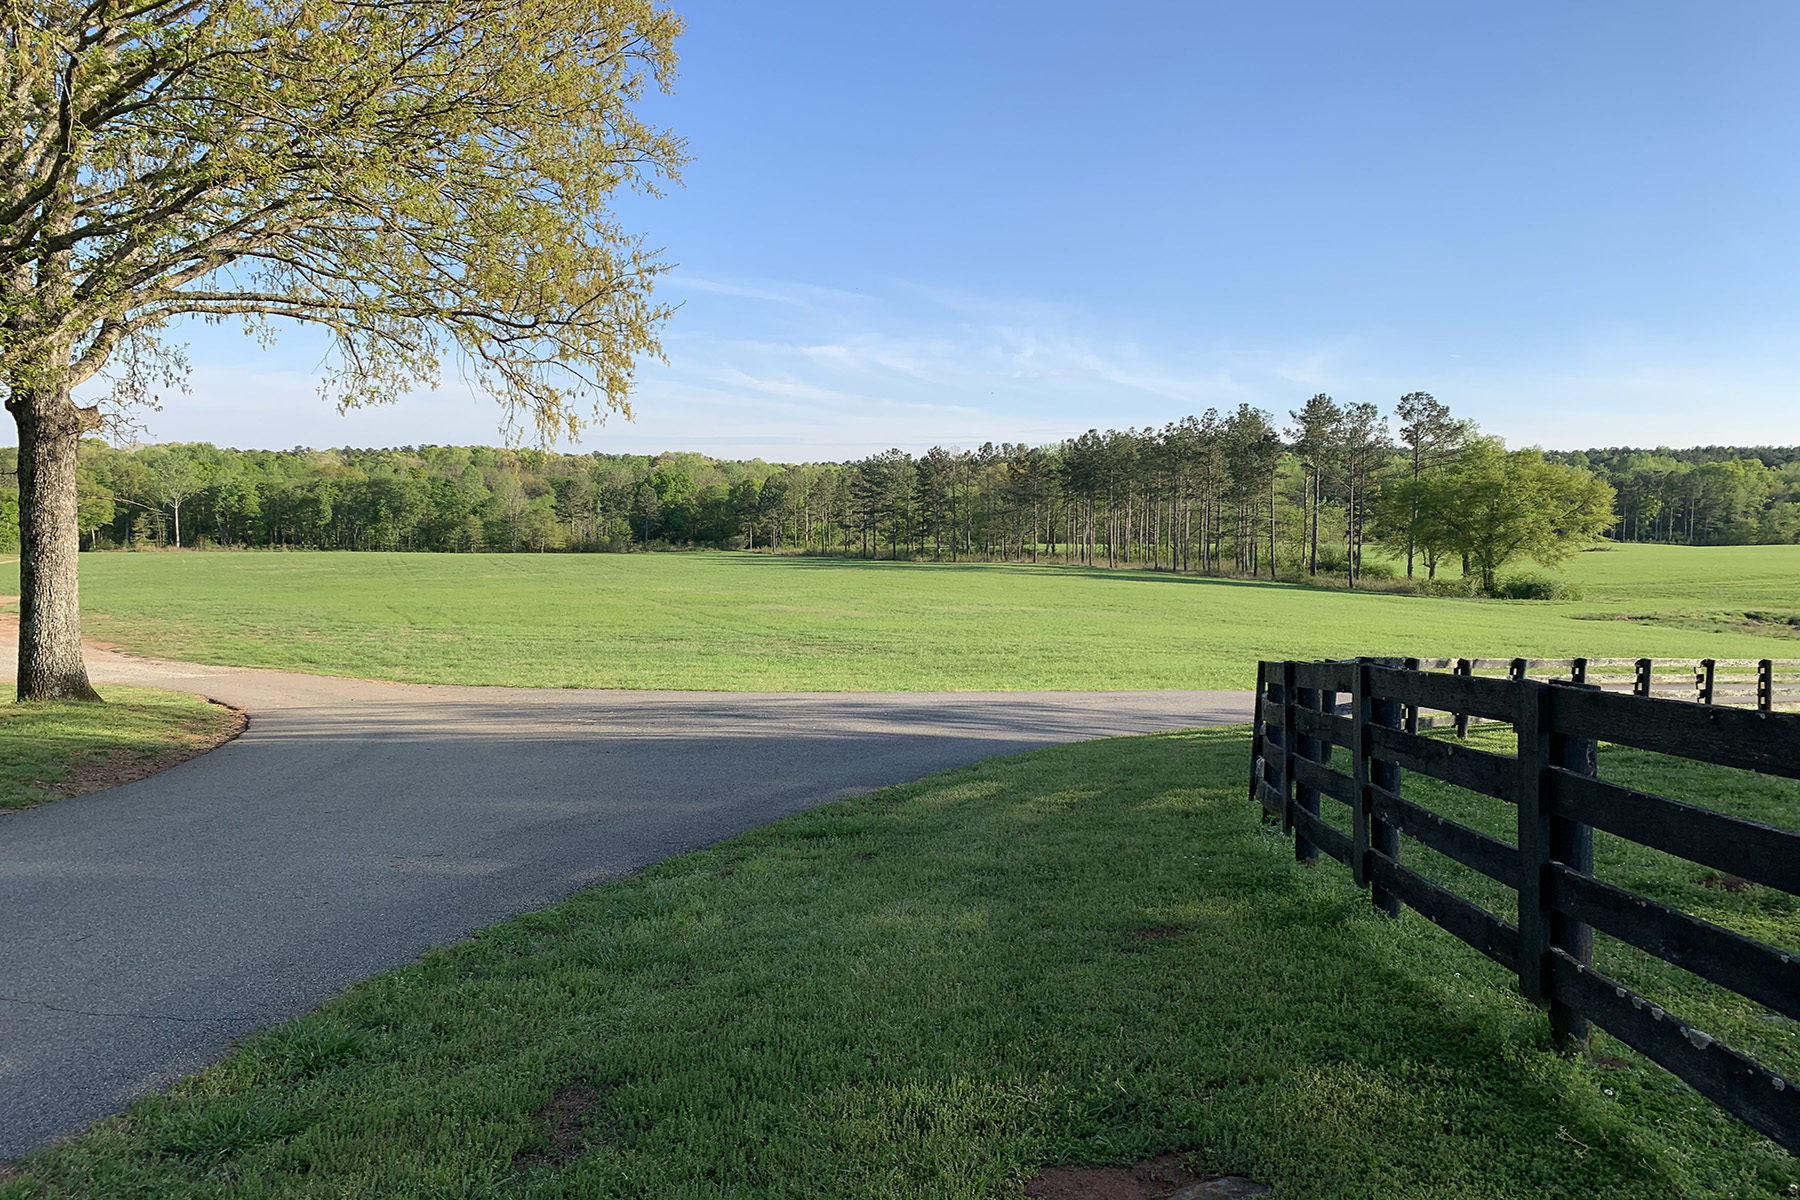 Land for Sale at Beautiful, Gentle, Rolling 18 +/- Acre Site Attached to Bear Creek Farm. 0 Bear Creek Road Lot 1 Moreland, Georgia 30259 United States